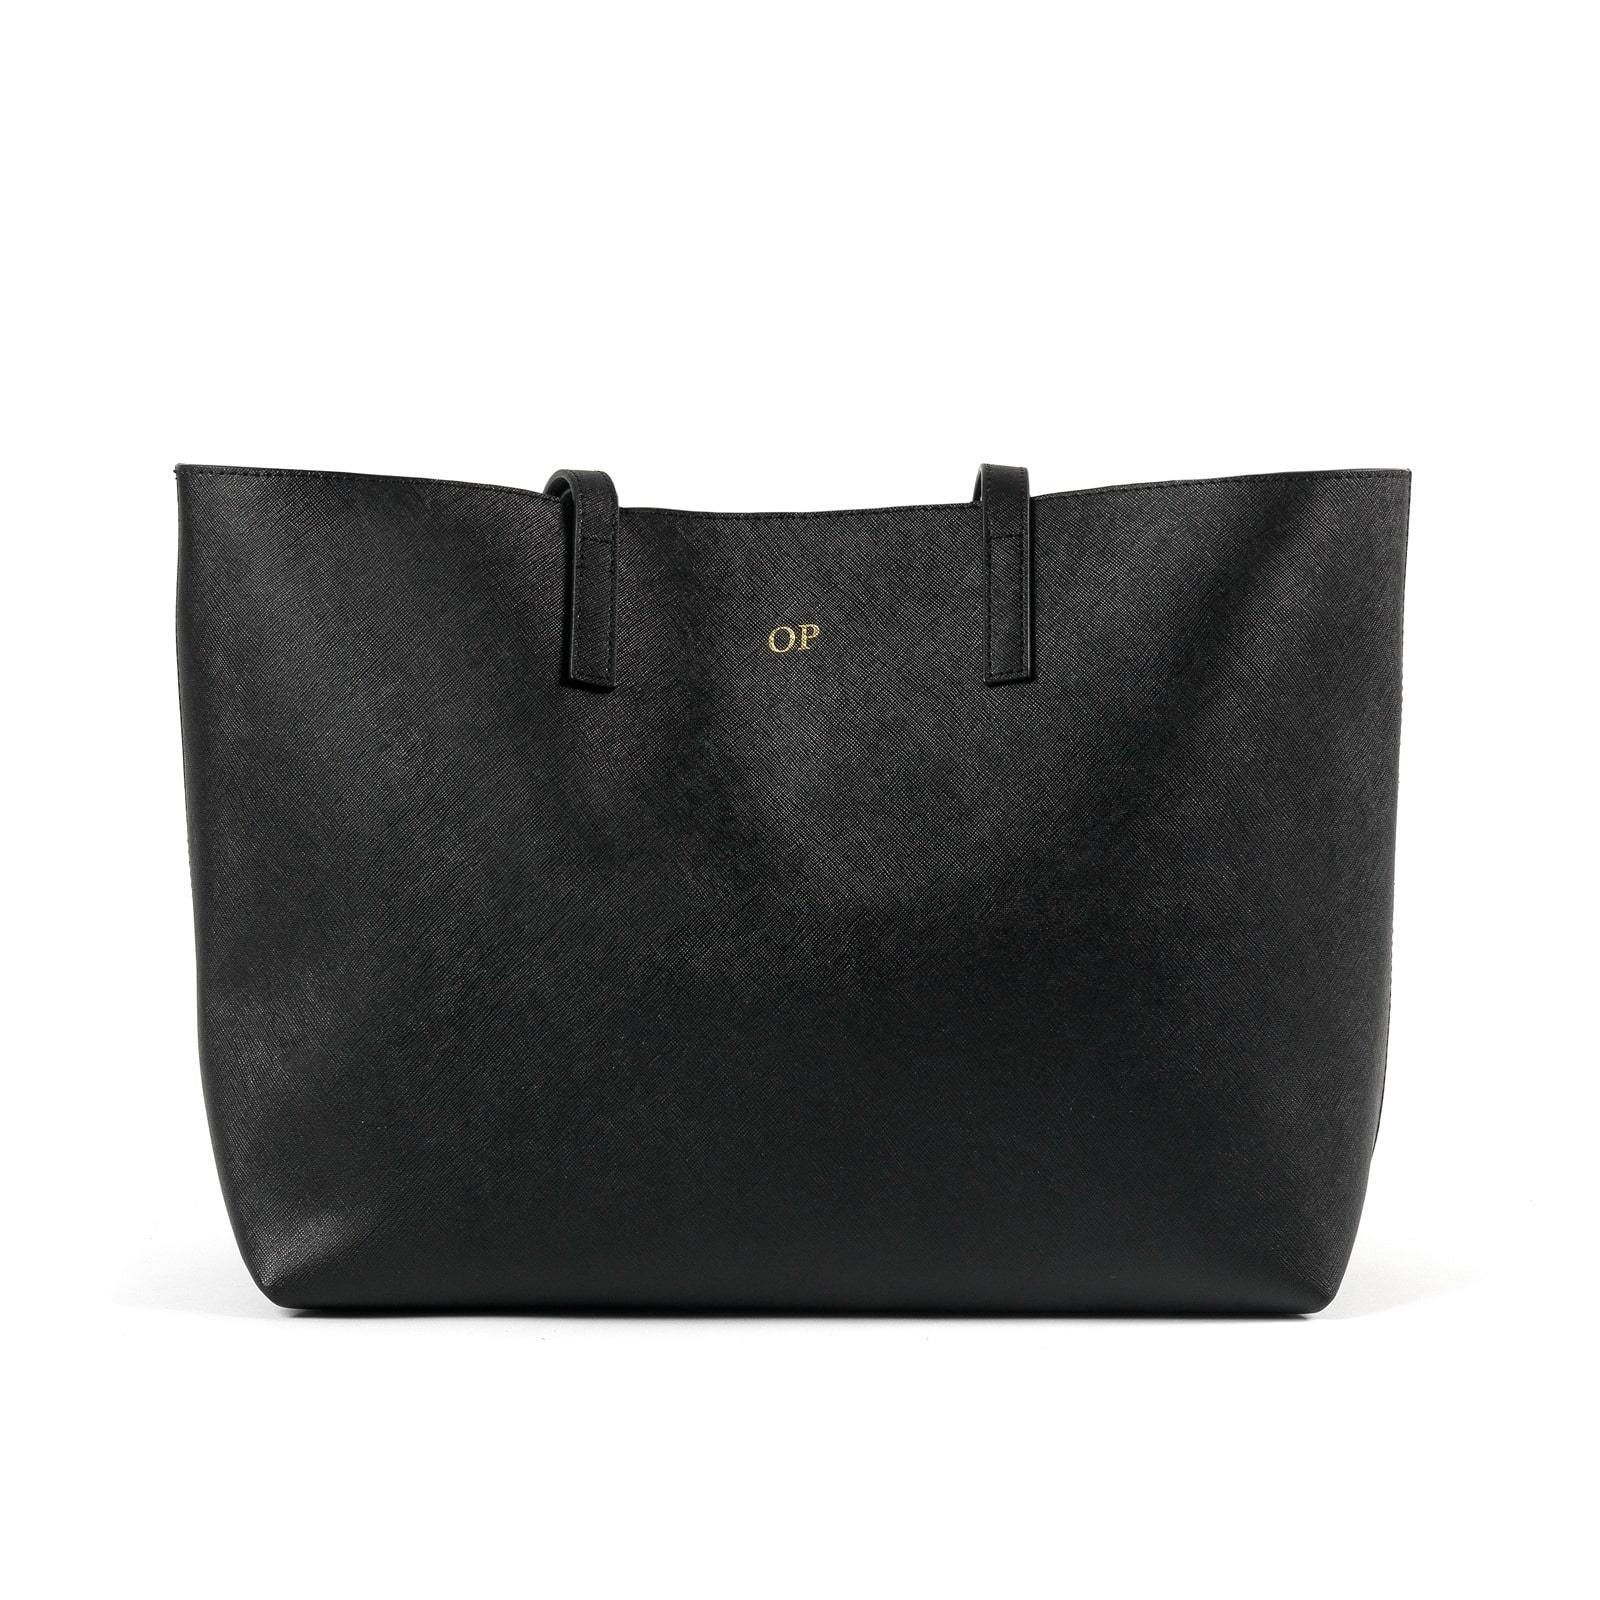 Personalised Black Saffiano Leather Tote